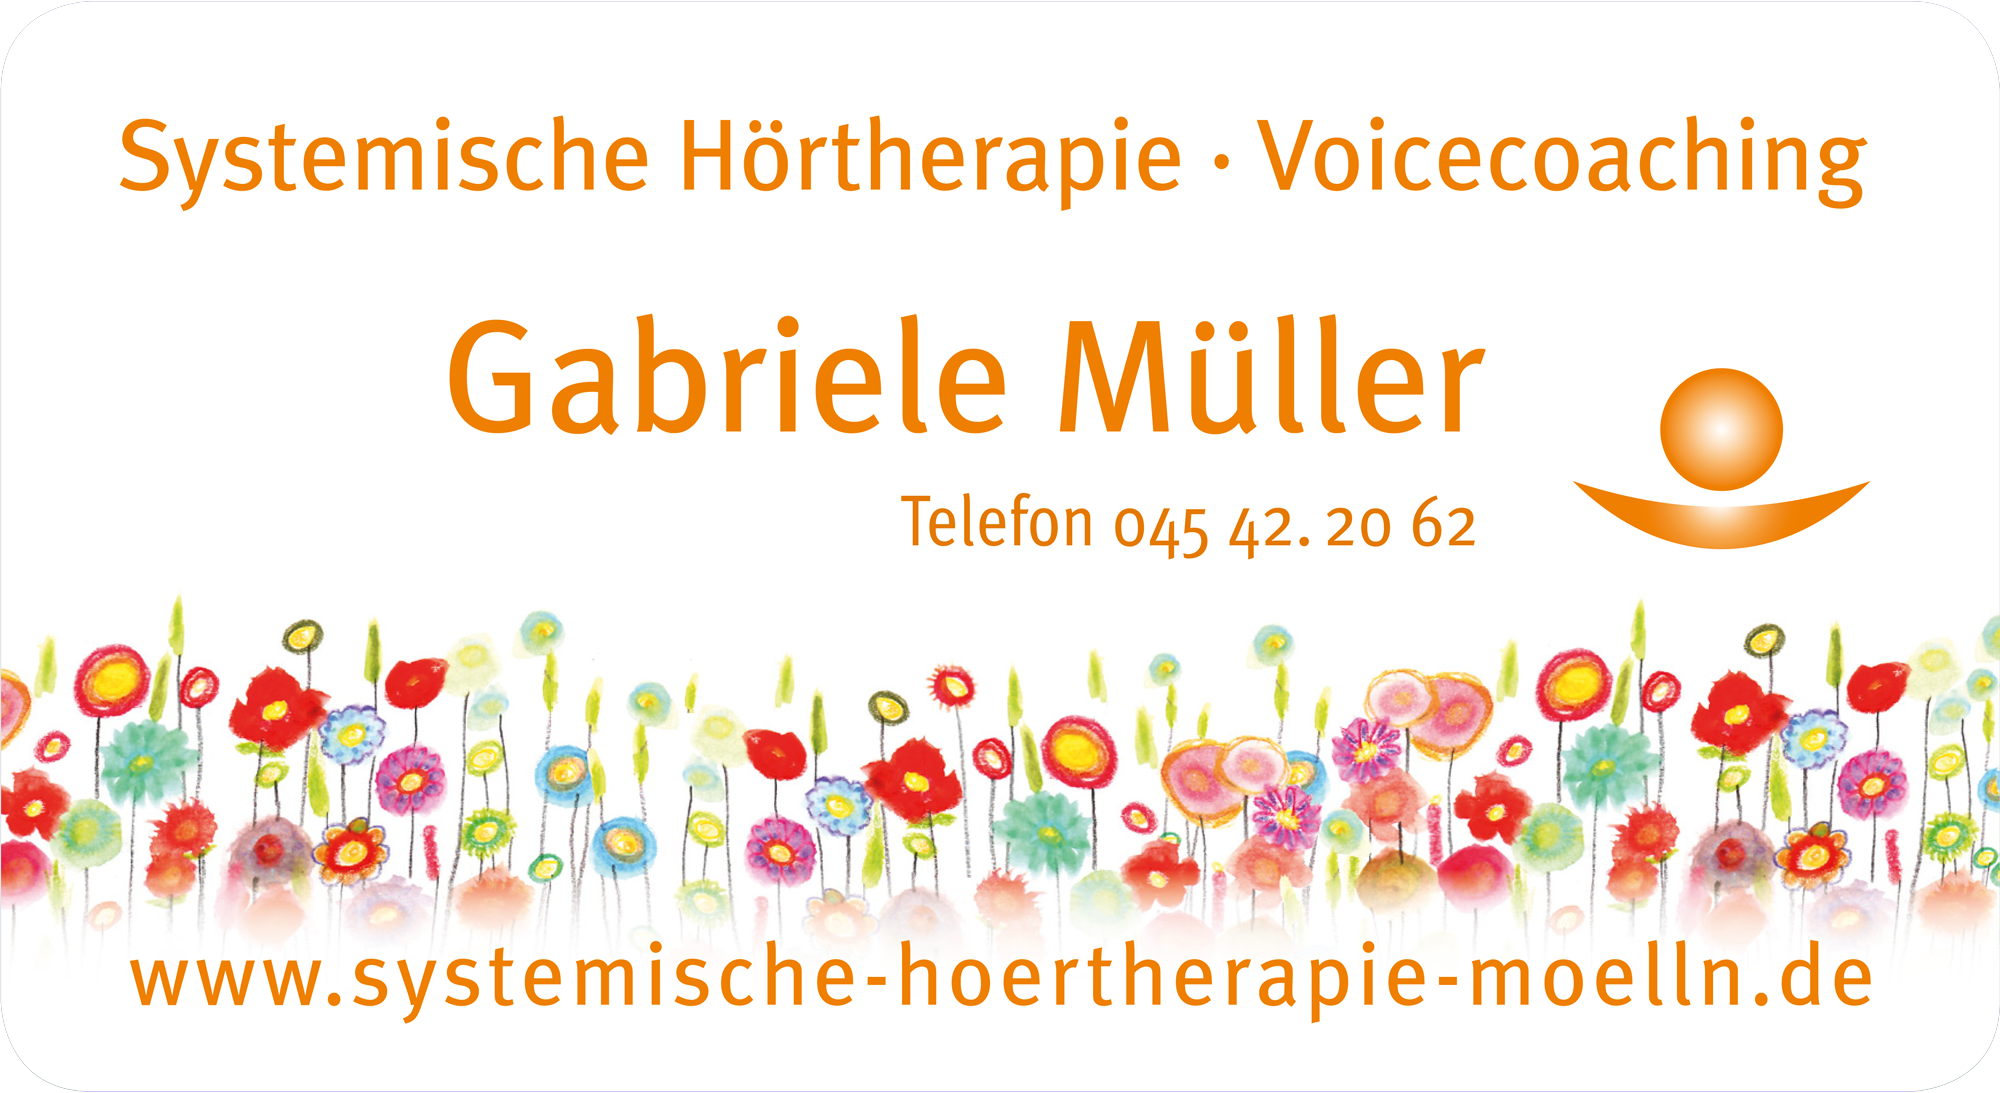 Gabriele Müller - Metamorphische Methode - Systemische Hörtherapie - Voicecoaching